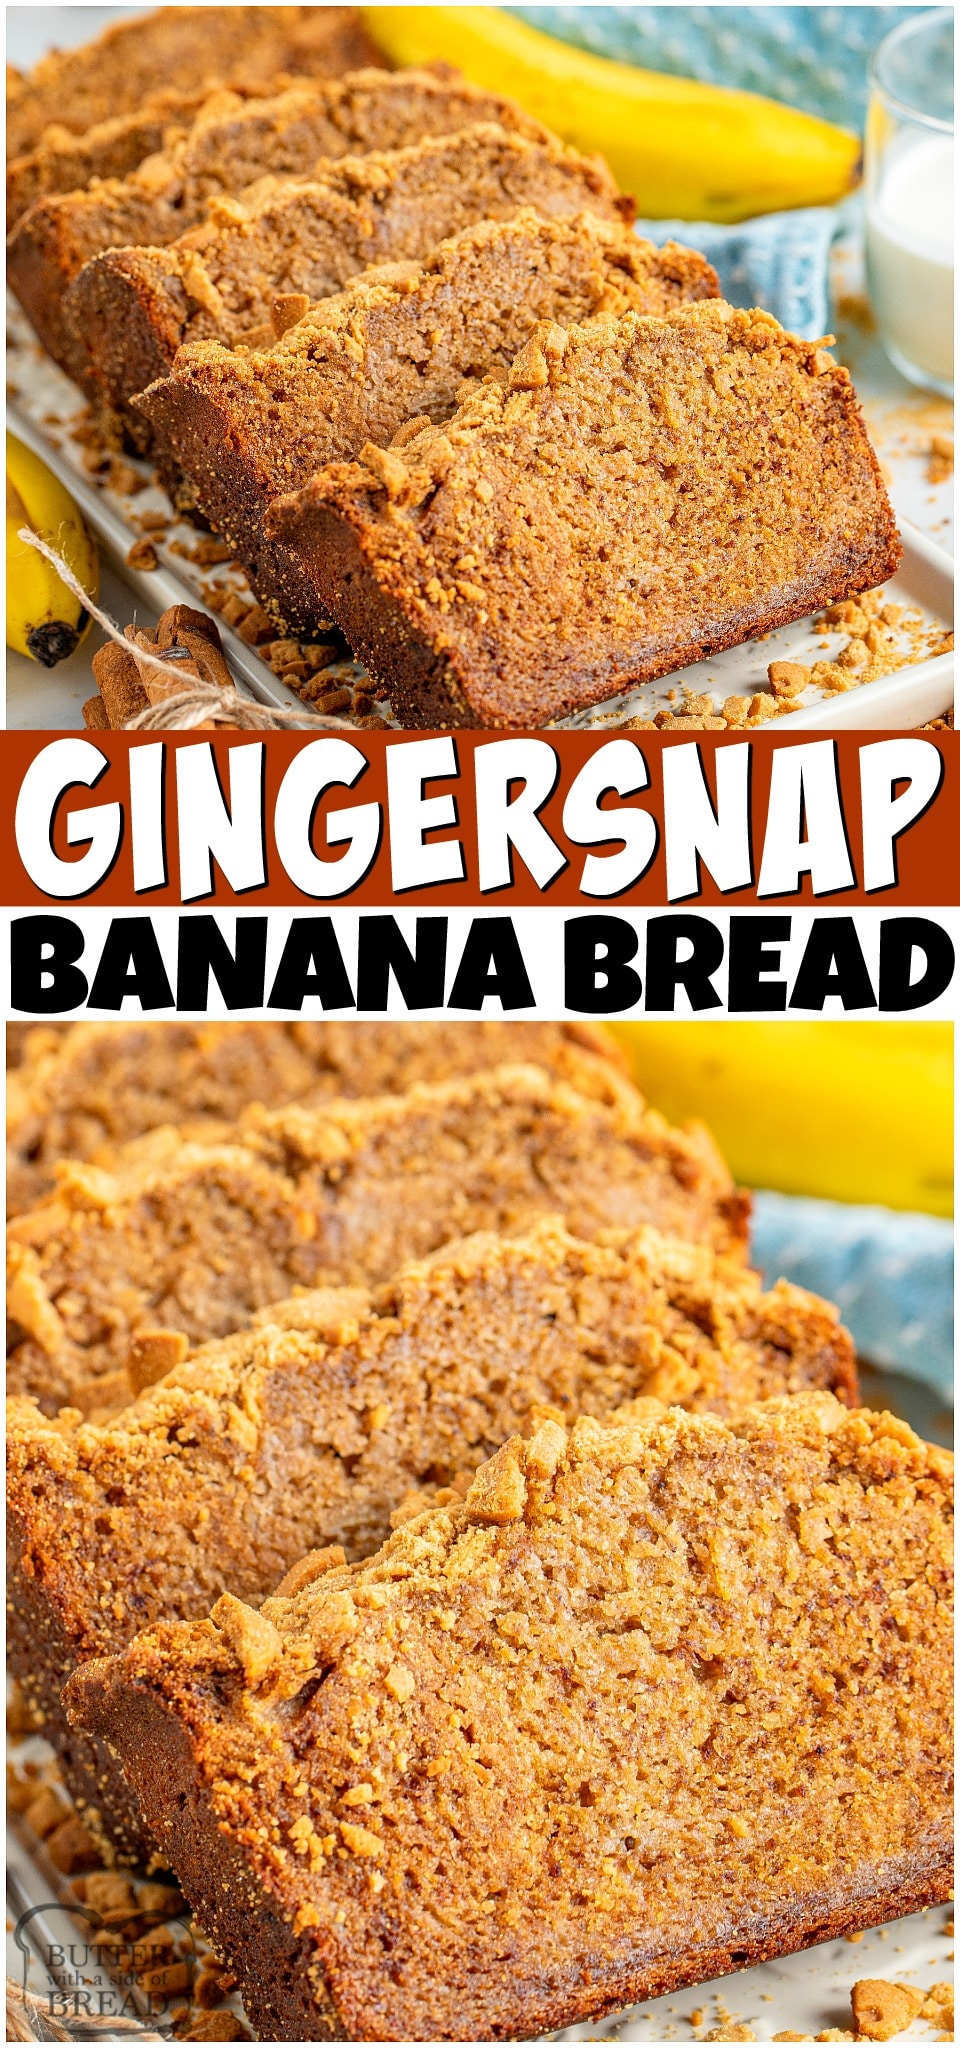 Gingersnap Banana Bread is a spiced banana bread recipe topped with crushed gingersnap cookies! The flavors meld into perfection in this incredible banana quick bread.